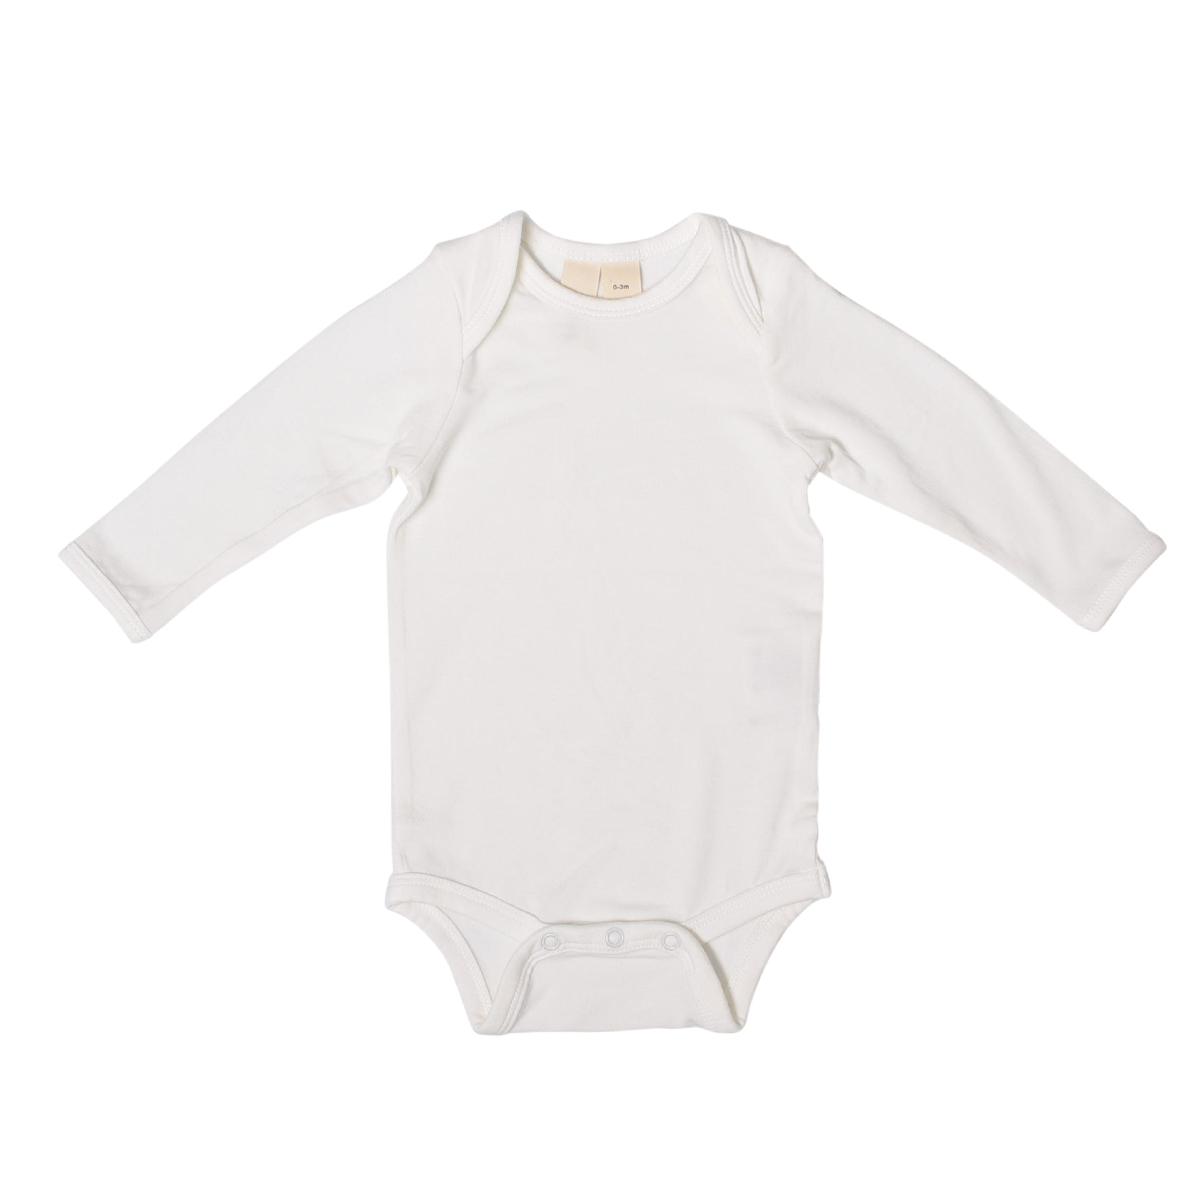 Kyte Baby Rayon from Bamboo Long Sleeve Onesie in Cloud